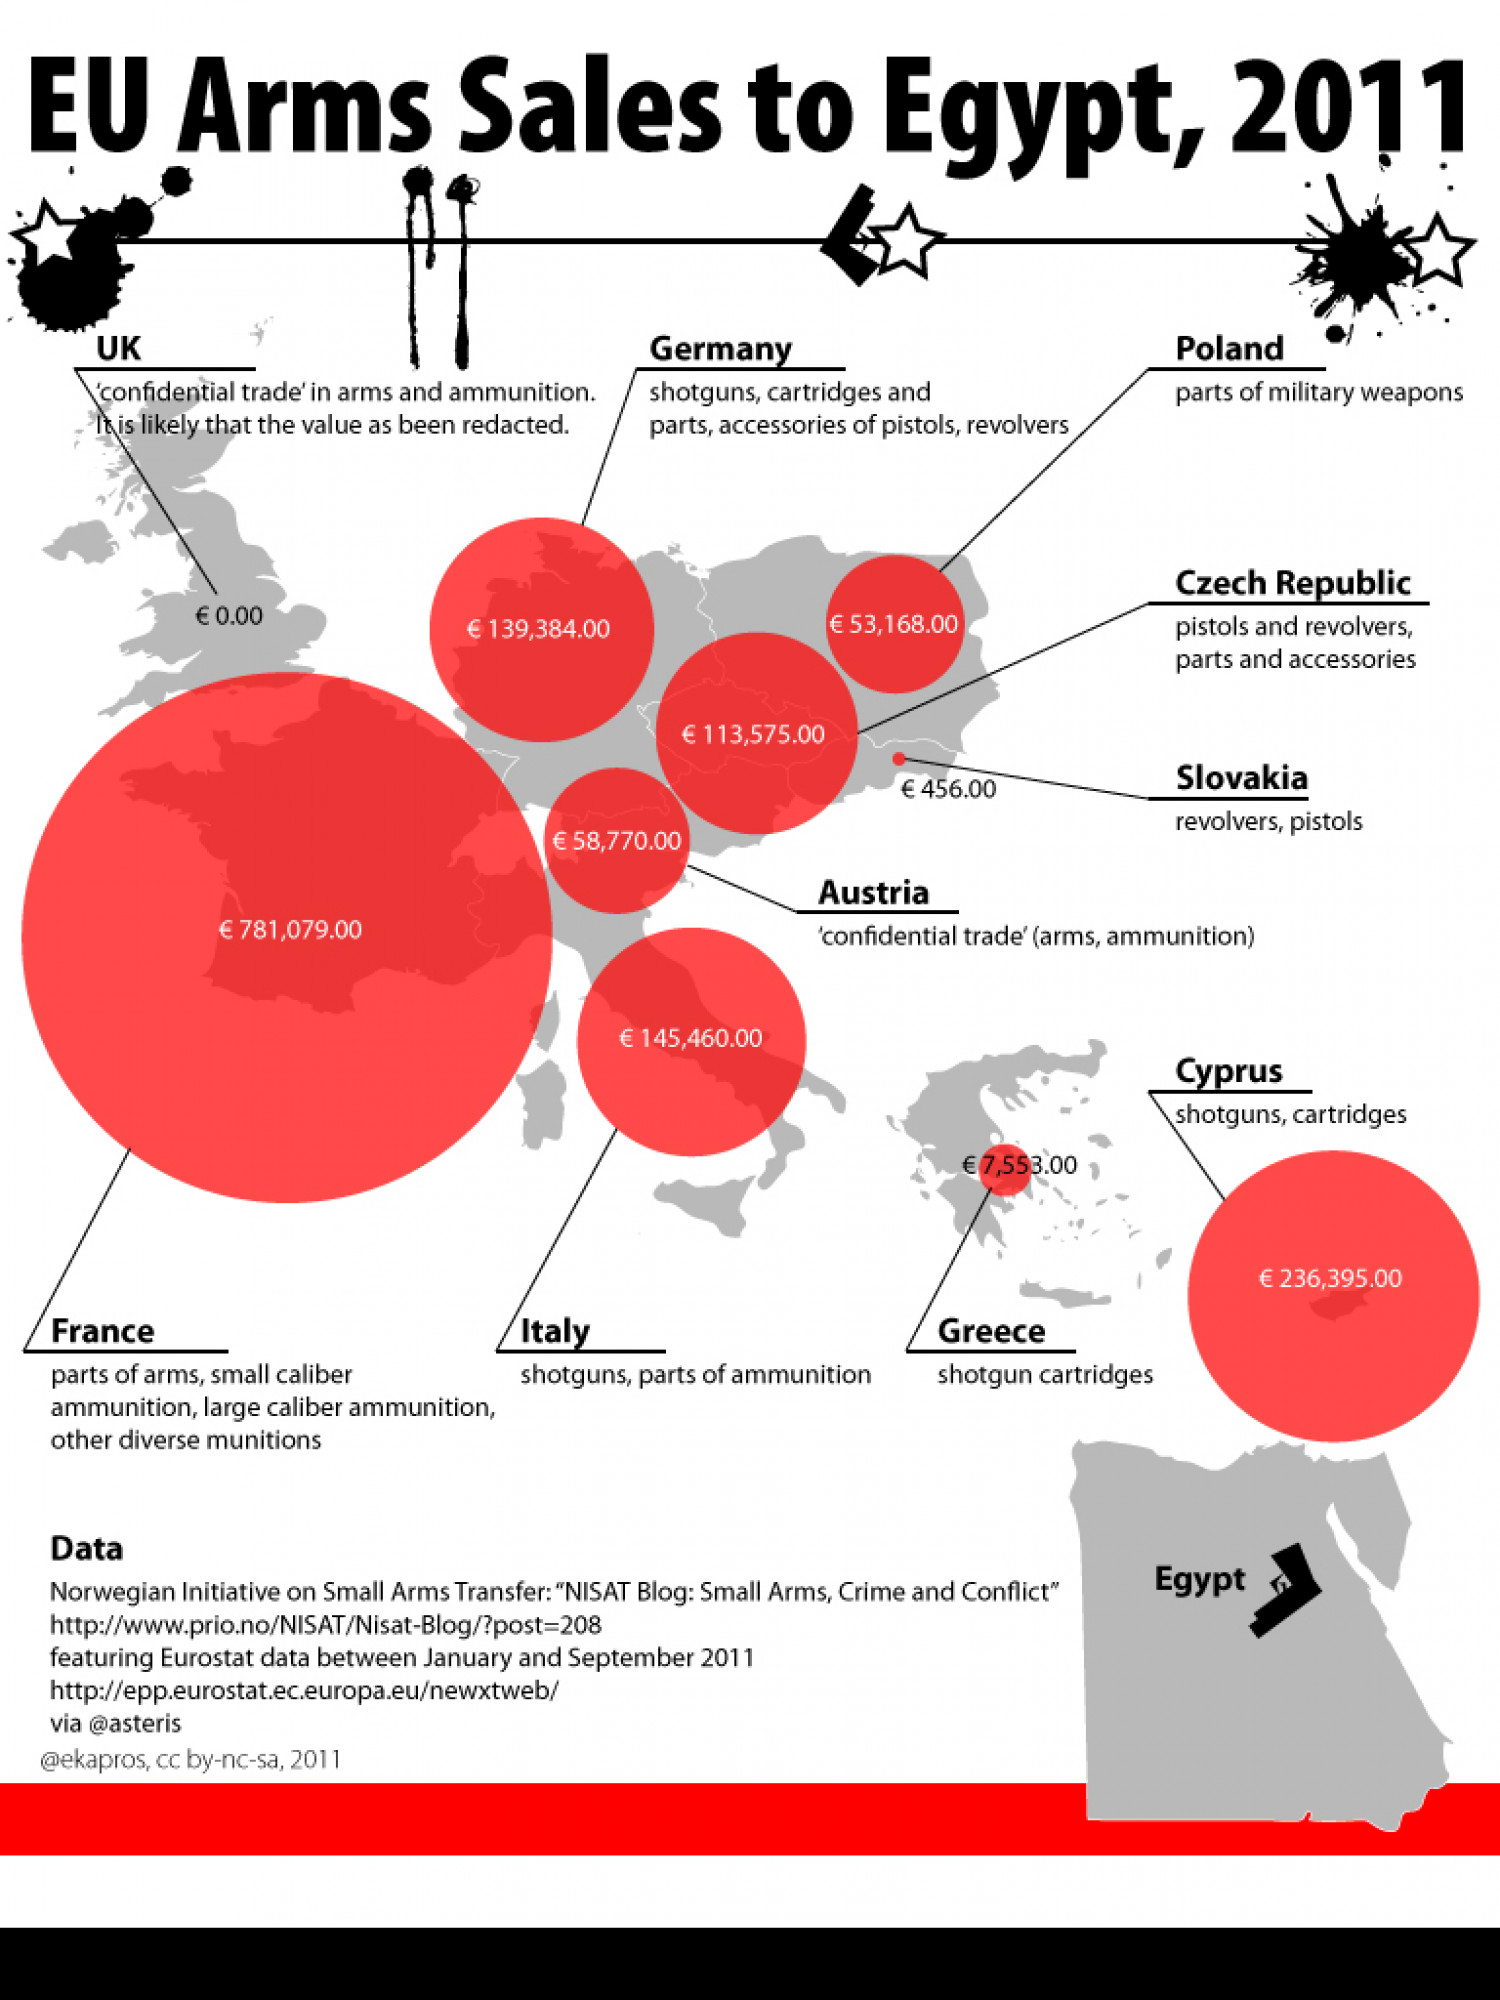 EU Arms Sales to Egypt Infographic